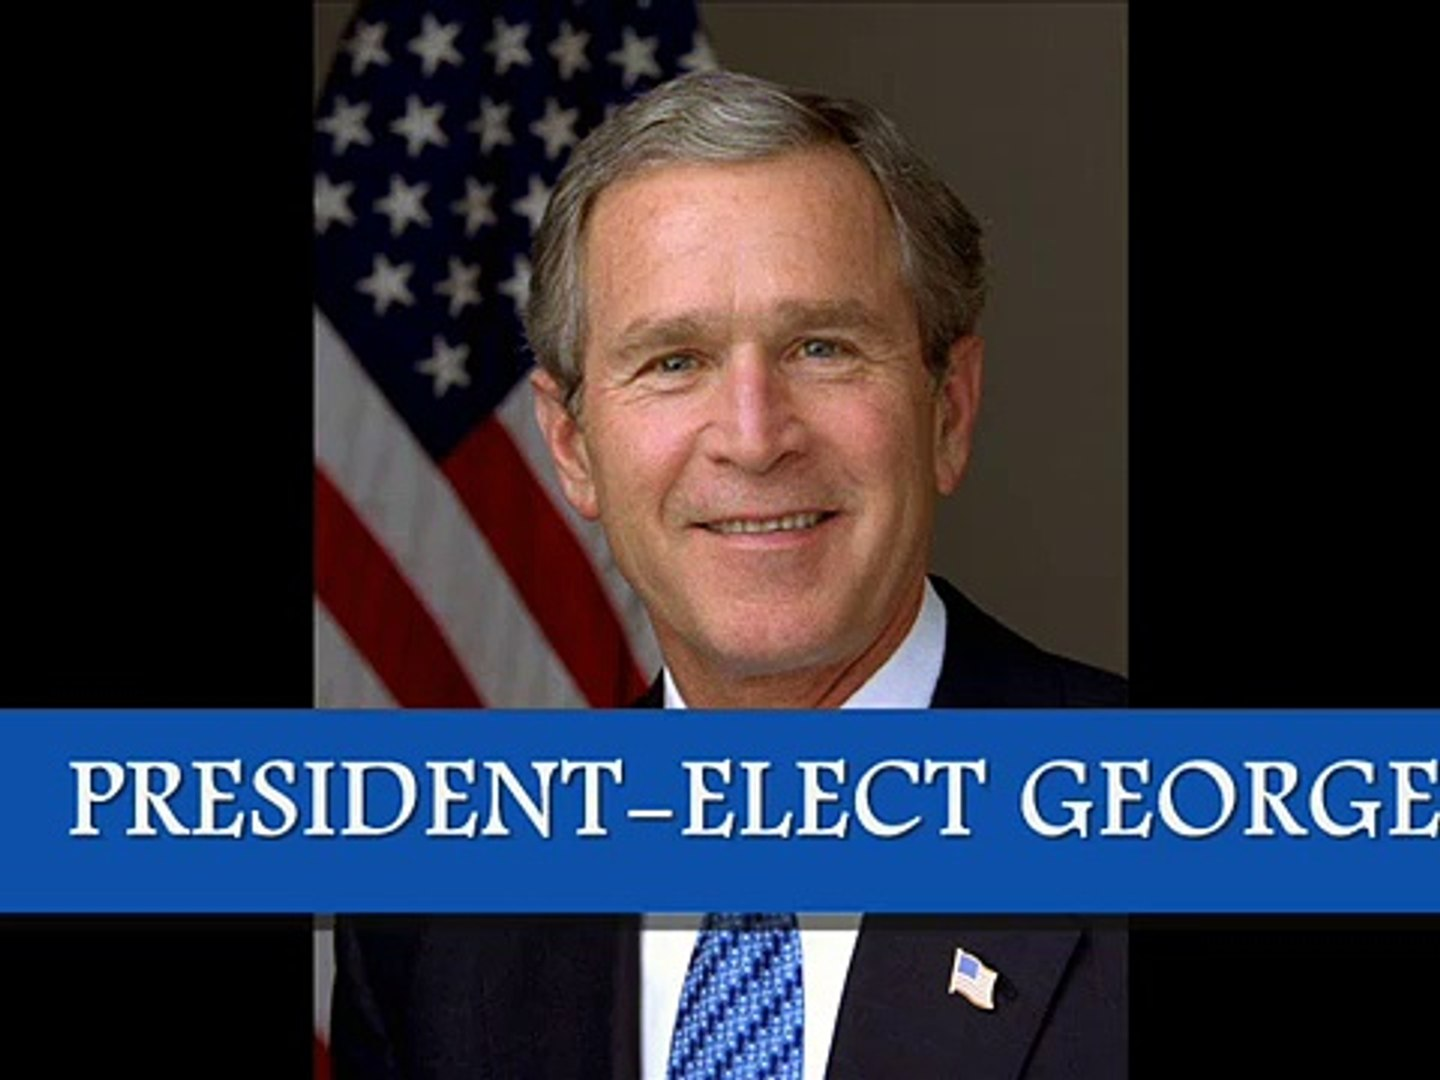 George W. Bush - Oath of office (first term, 2001-2005) January 20, 2001